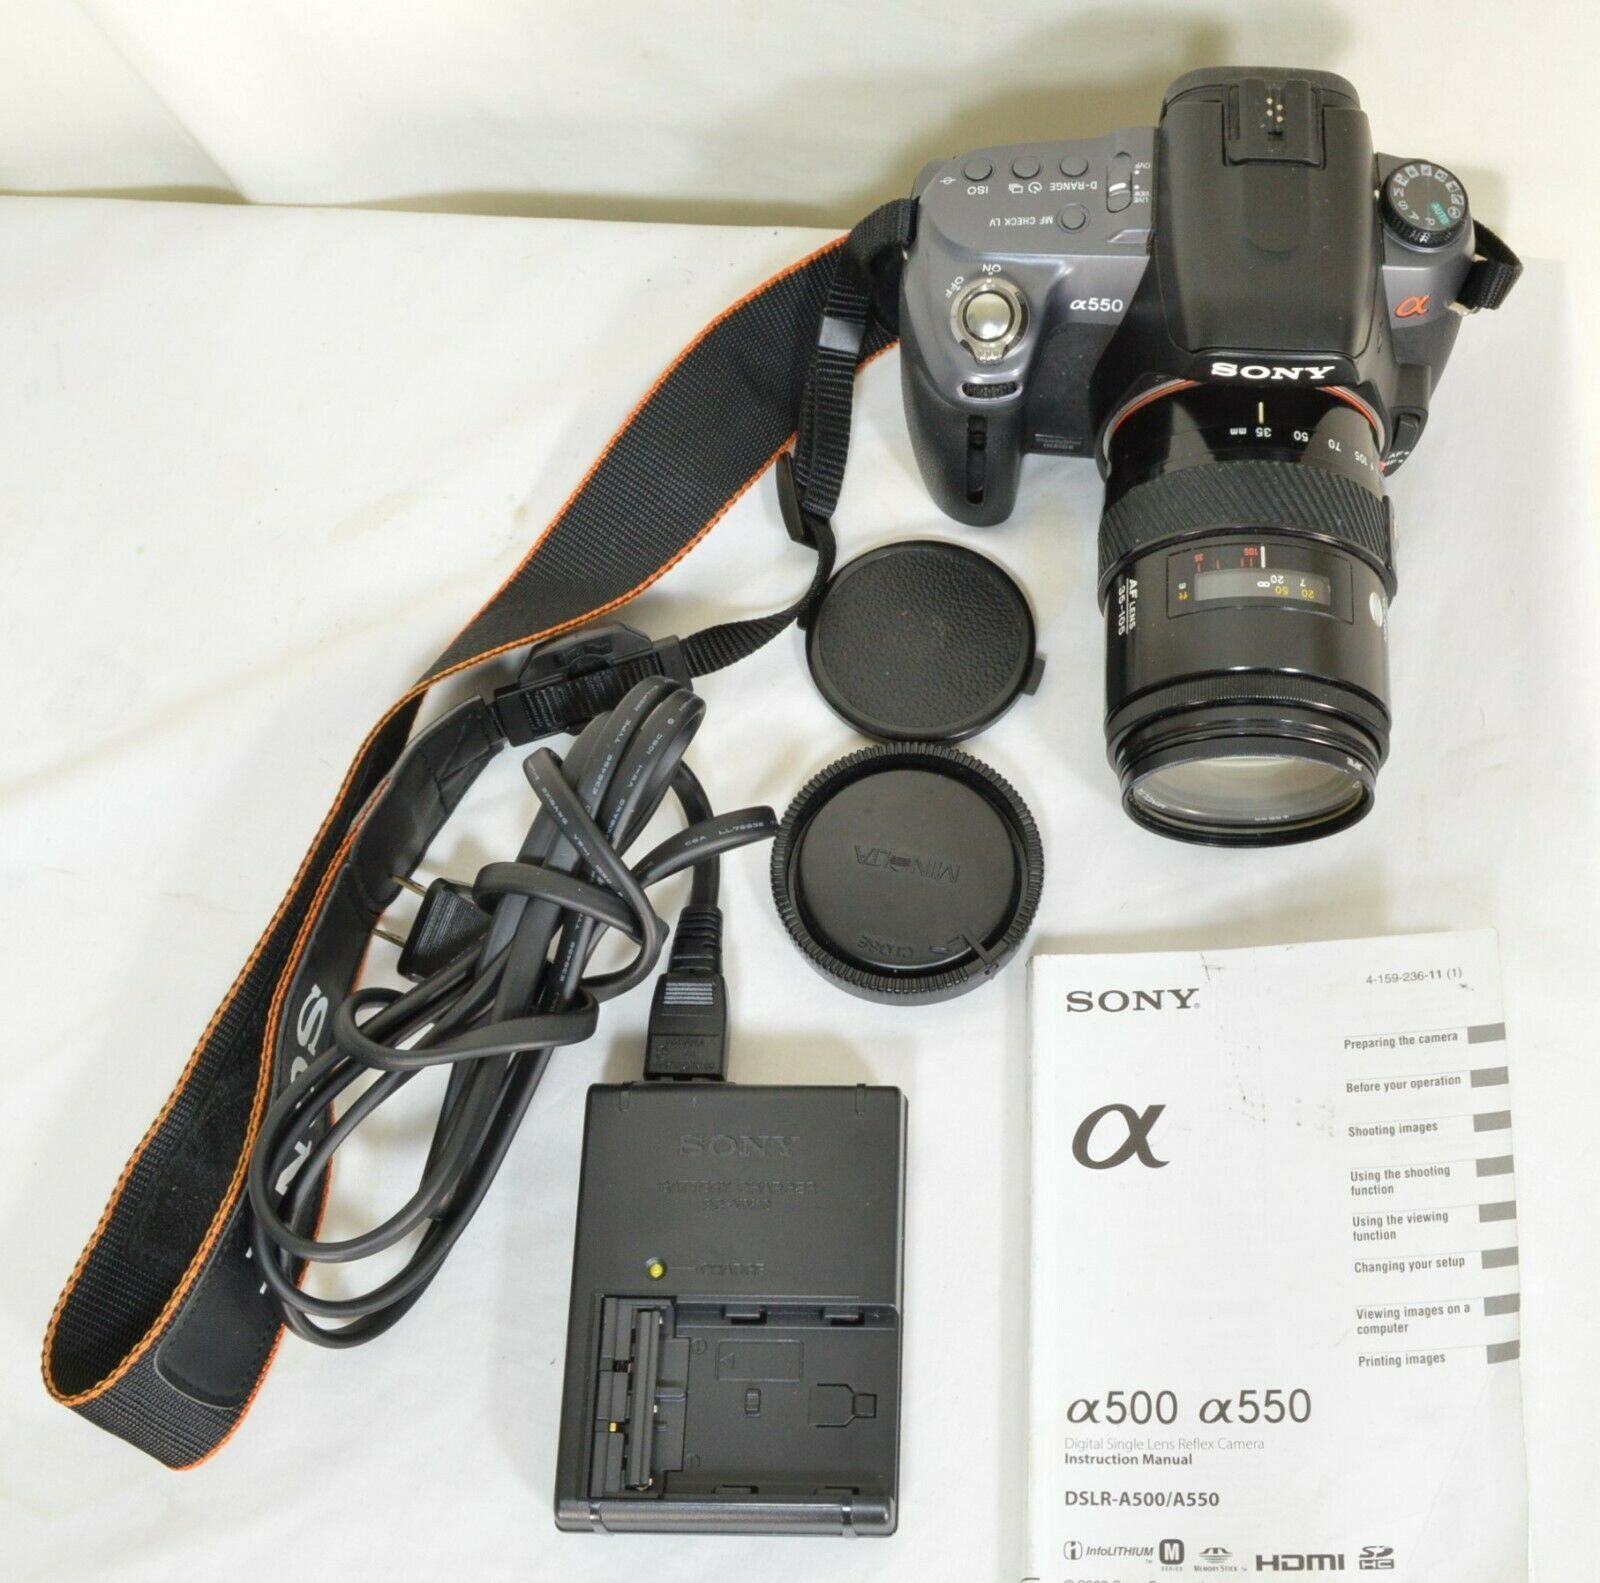 Sony Alpha DSLR-A550 14.2MP DSLR Camera Minolta Maxxum 35-105mm f/3.5-4.5 AF Len image 10